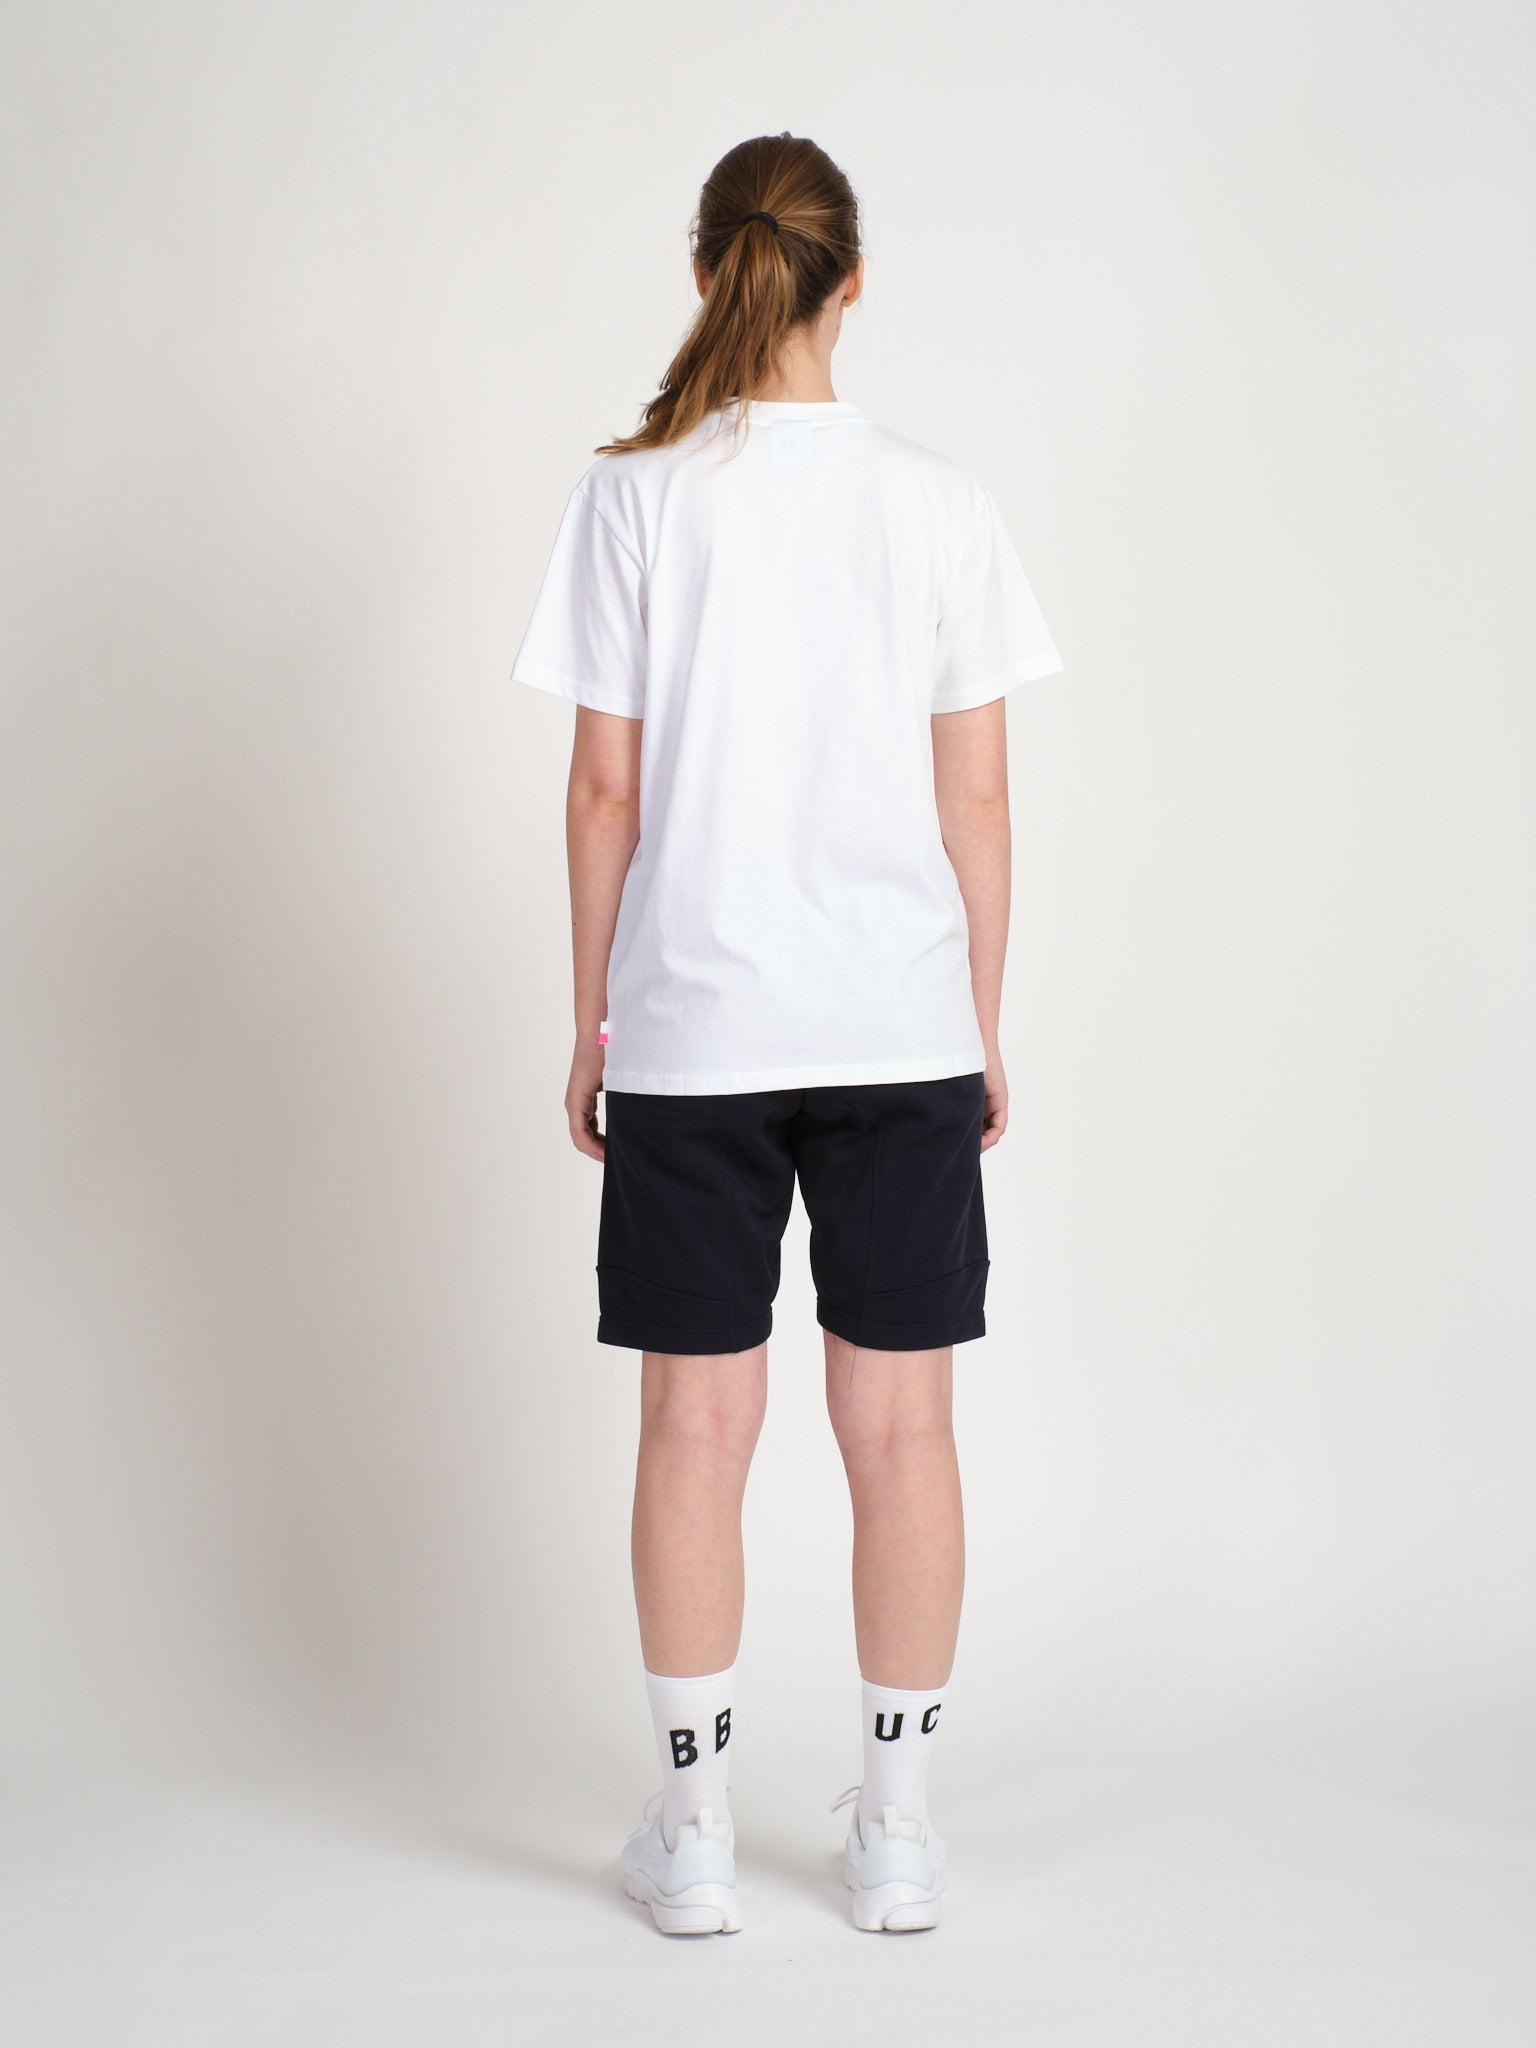 KOM des GARCON T-Shirt White Women